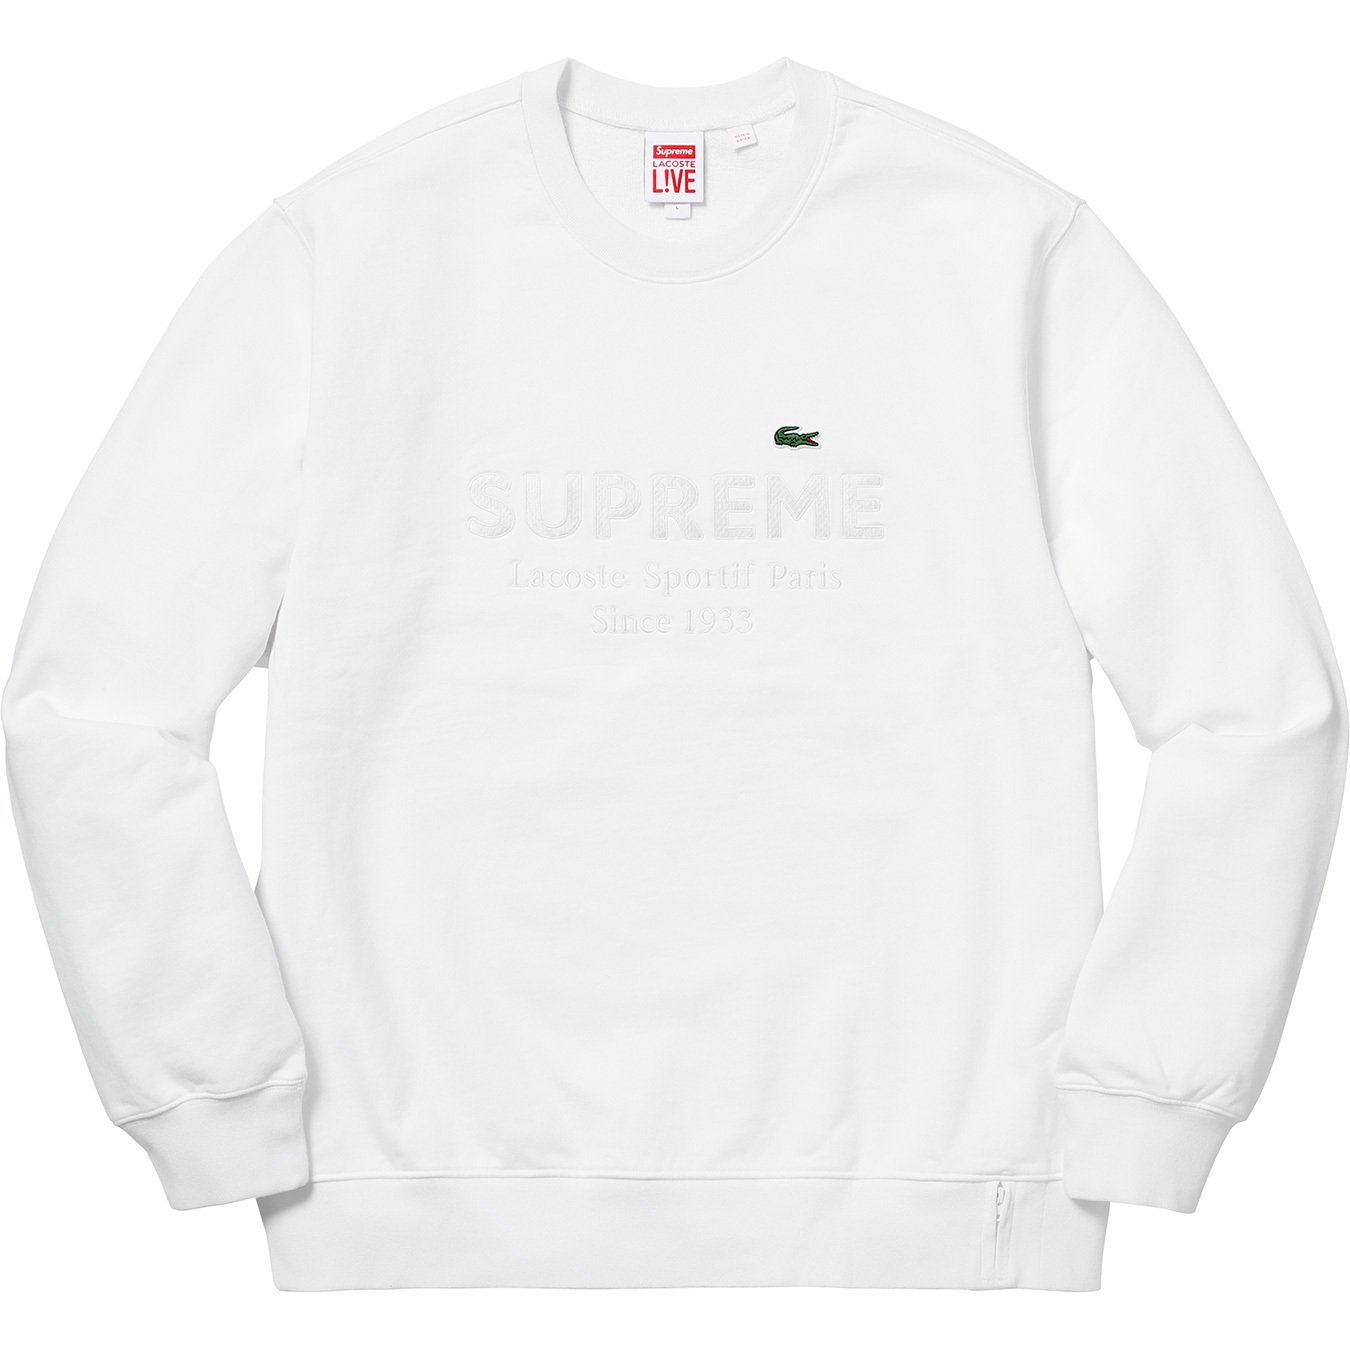 supreme-lacoste-18ss-collaboration-release-201180421-crewneck-sweatshirt